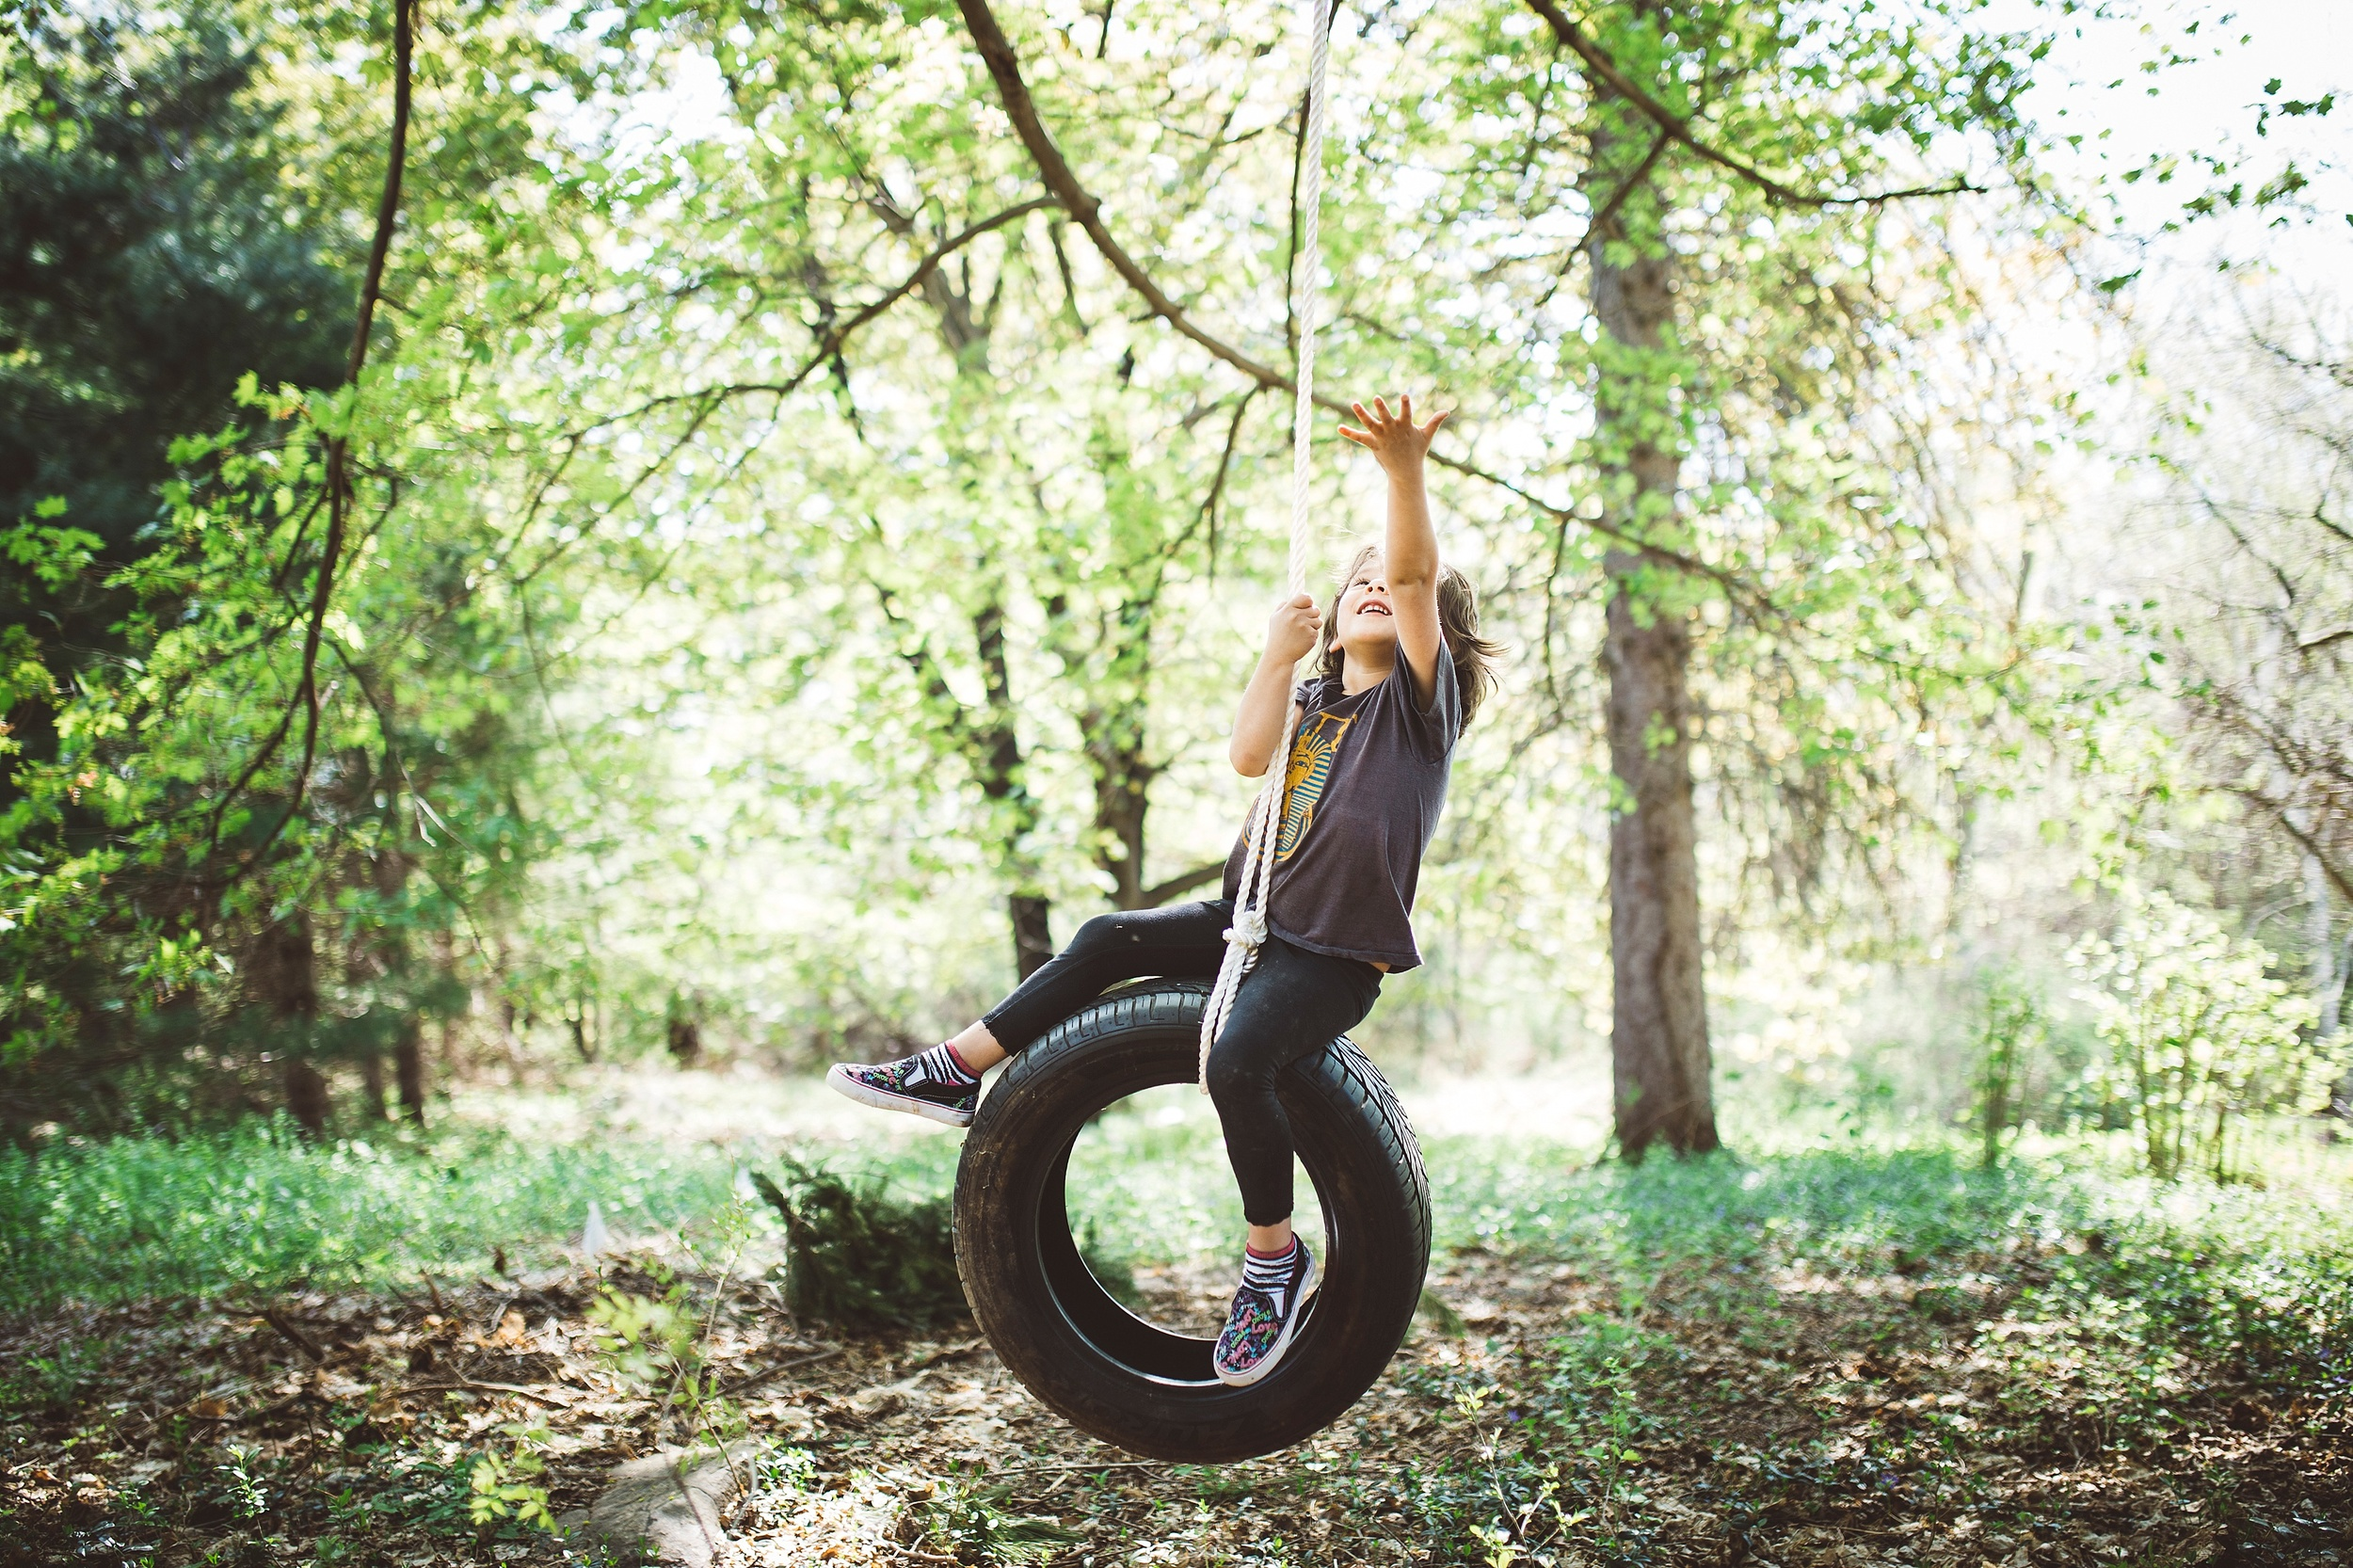 may 4-15 These city girls need some country air and a tire swing that hangs from a giant maple every now and then.